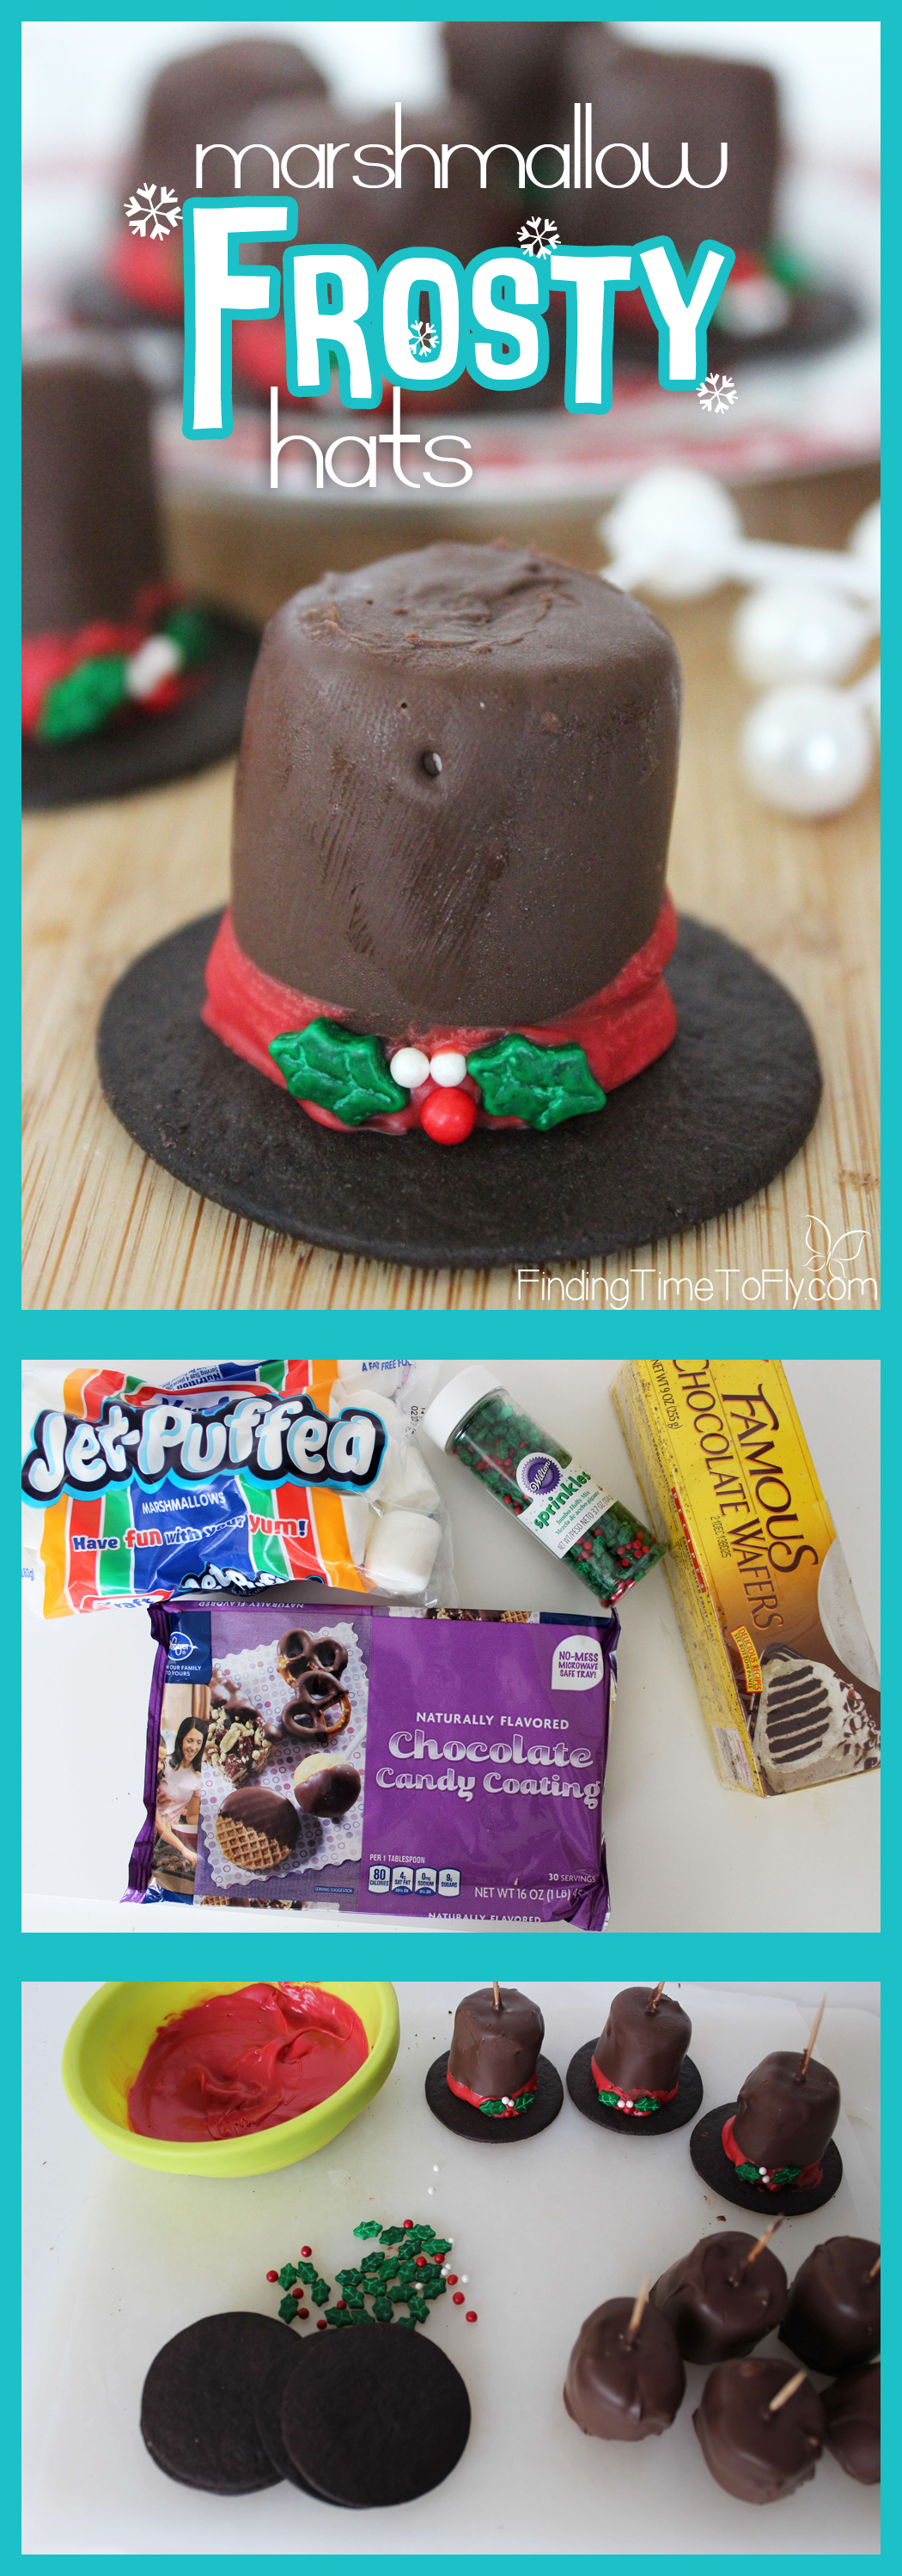 These Marshmallow Frosty Hats are perfect to include in Christmas Gift Baskets for friends and neighbors. With some little helpers, I can make dozens of these in half an hour!